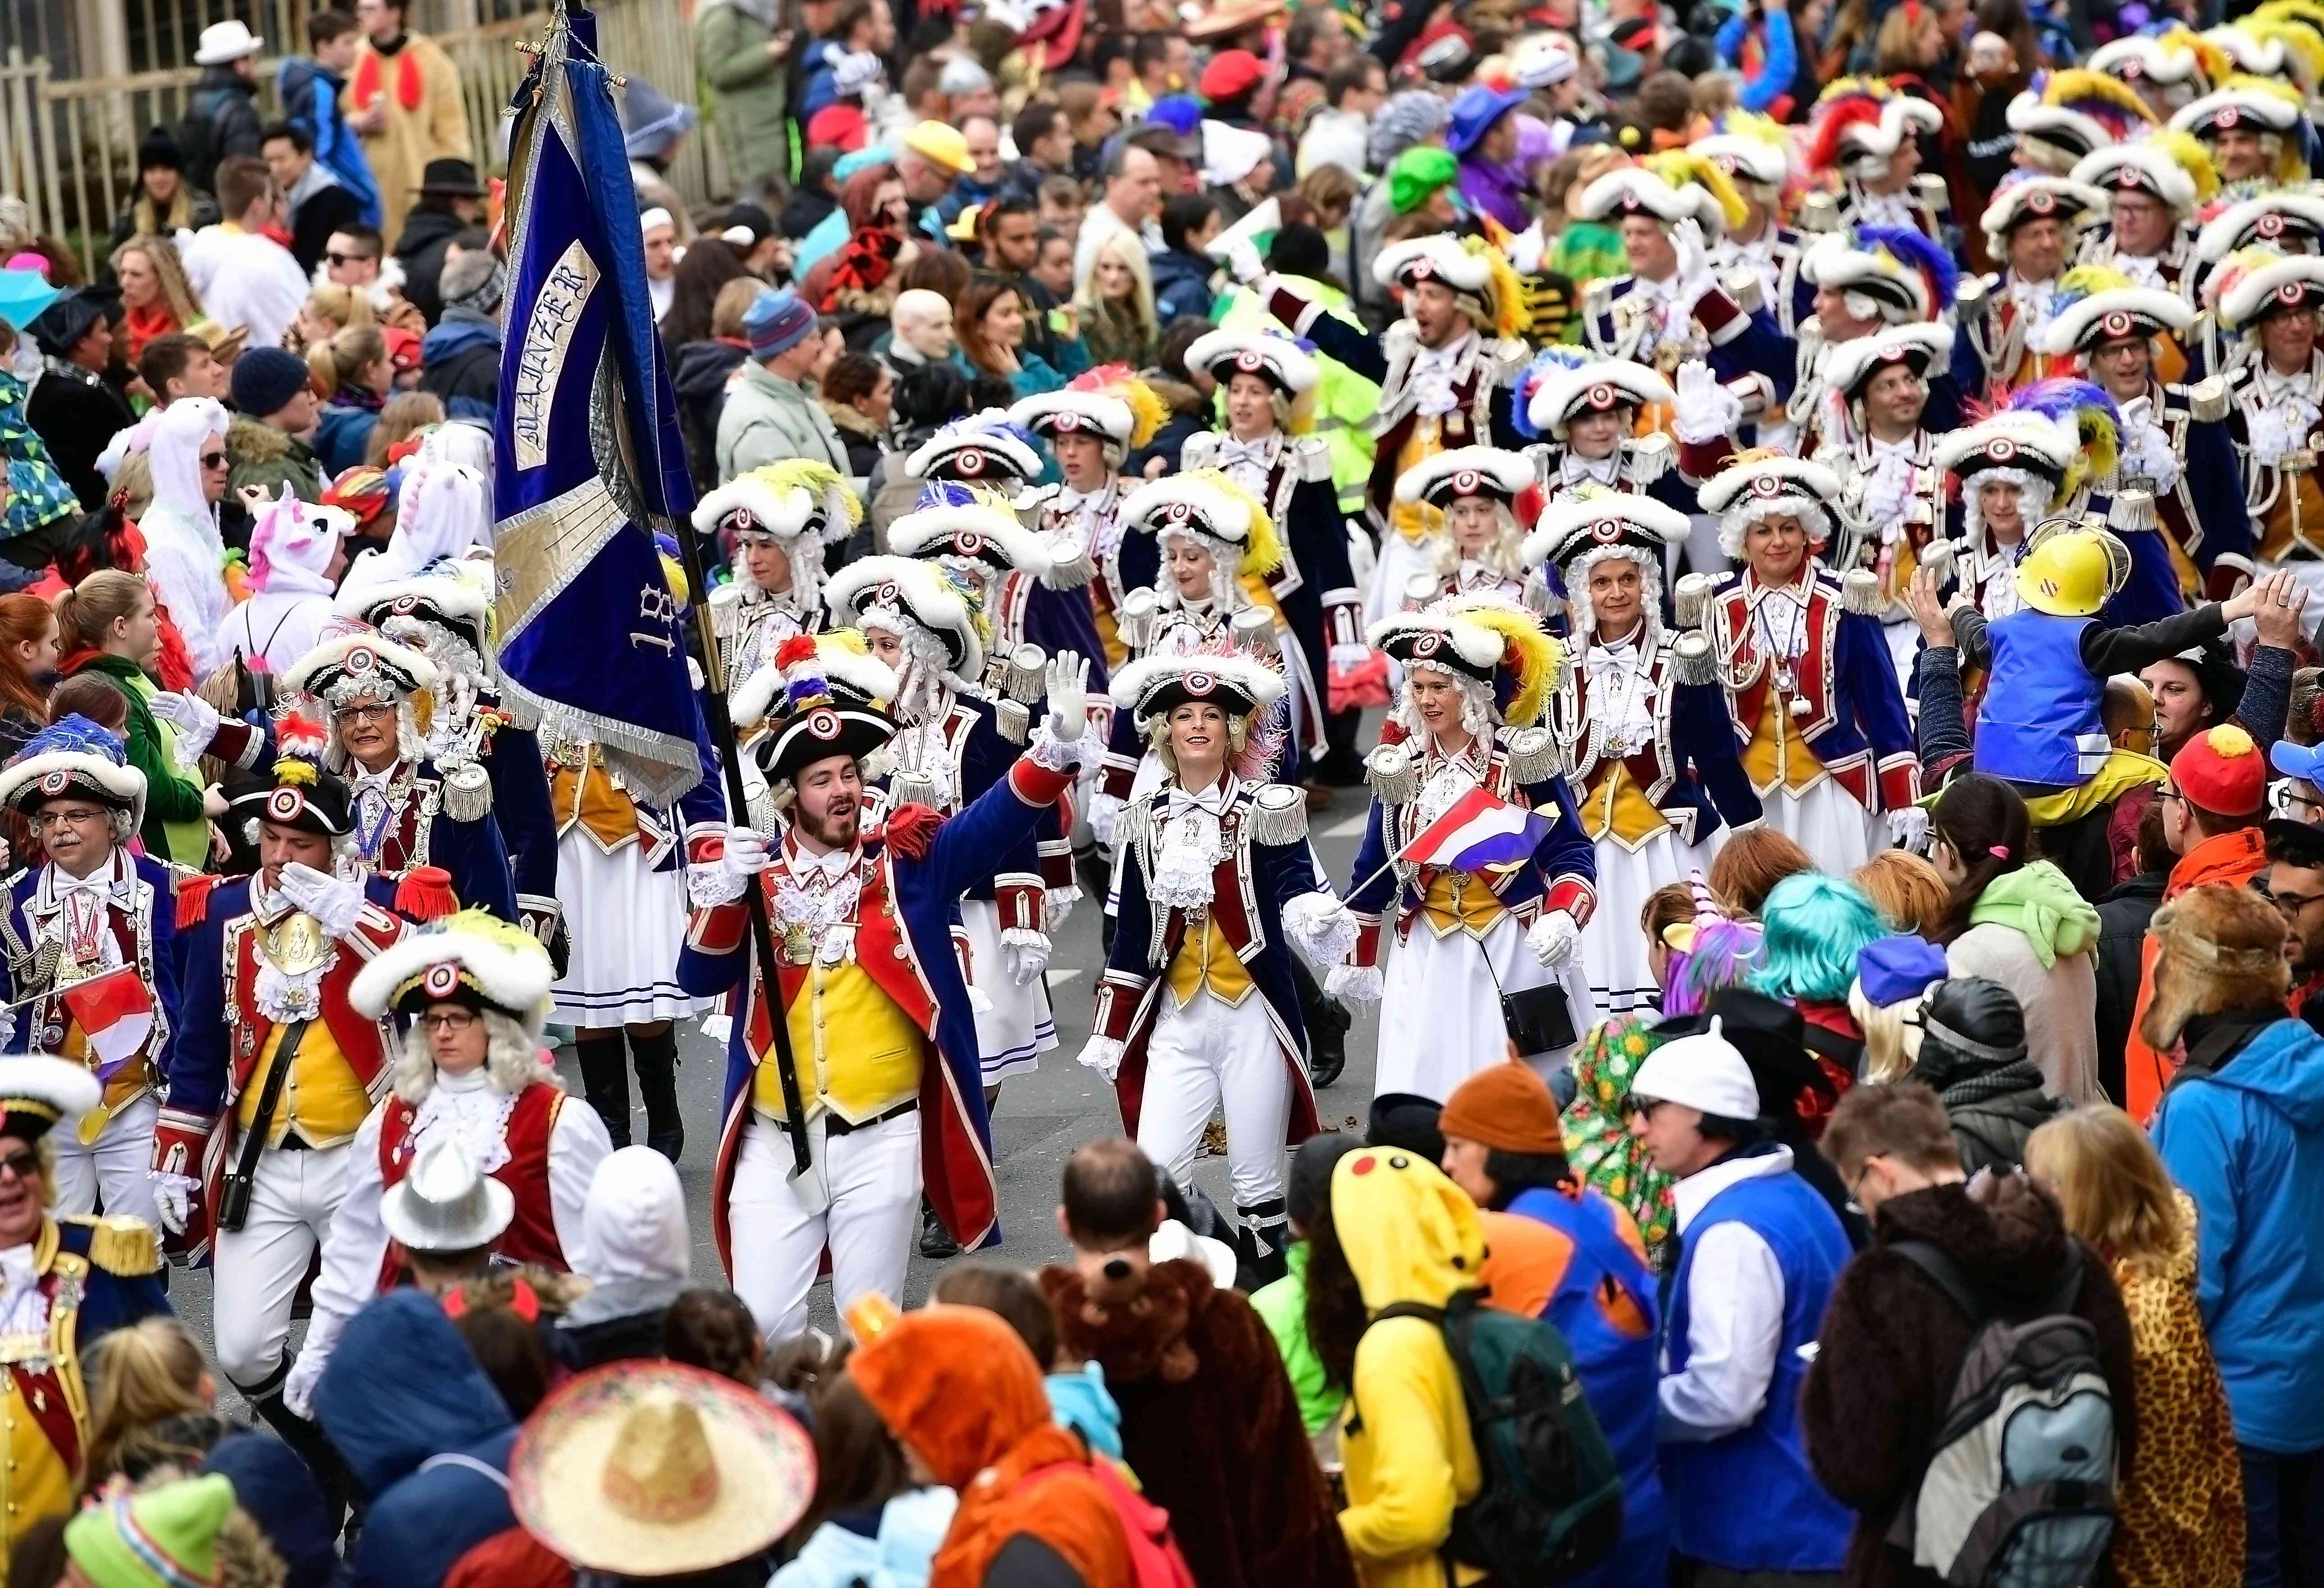 People marching in parade in Mainz Germany wearing historical costumes